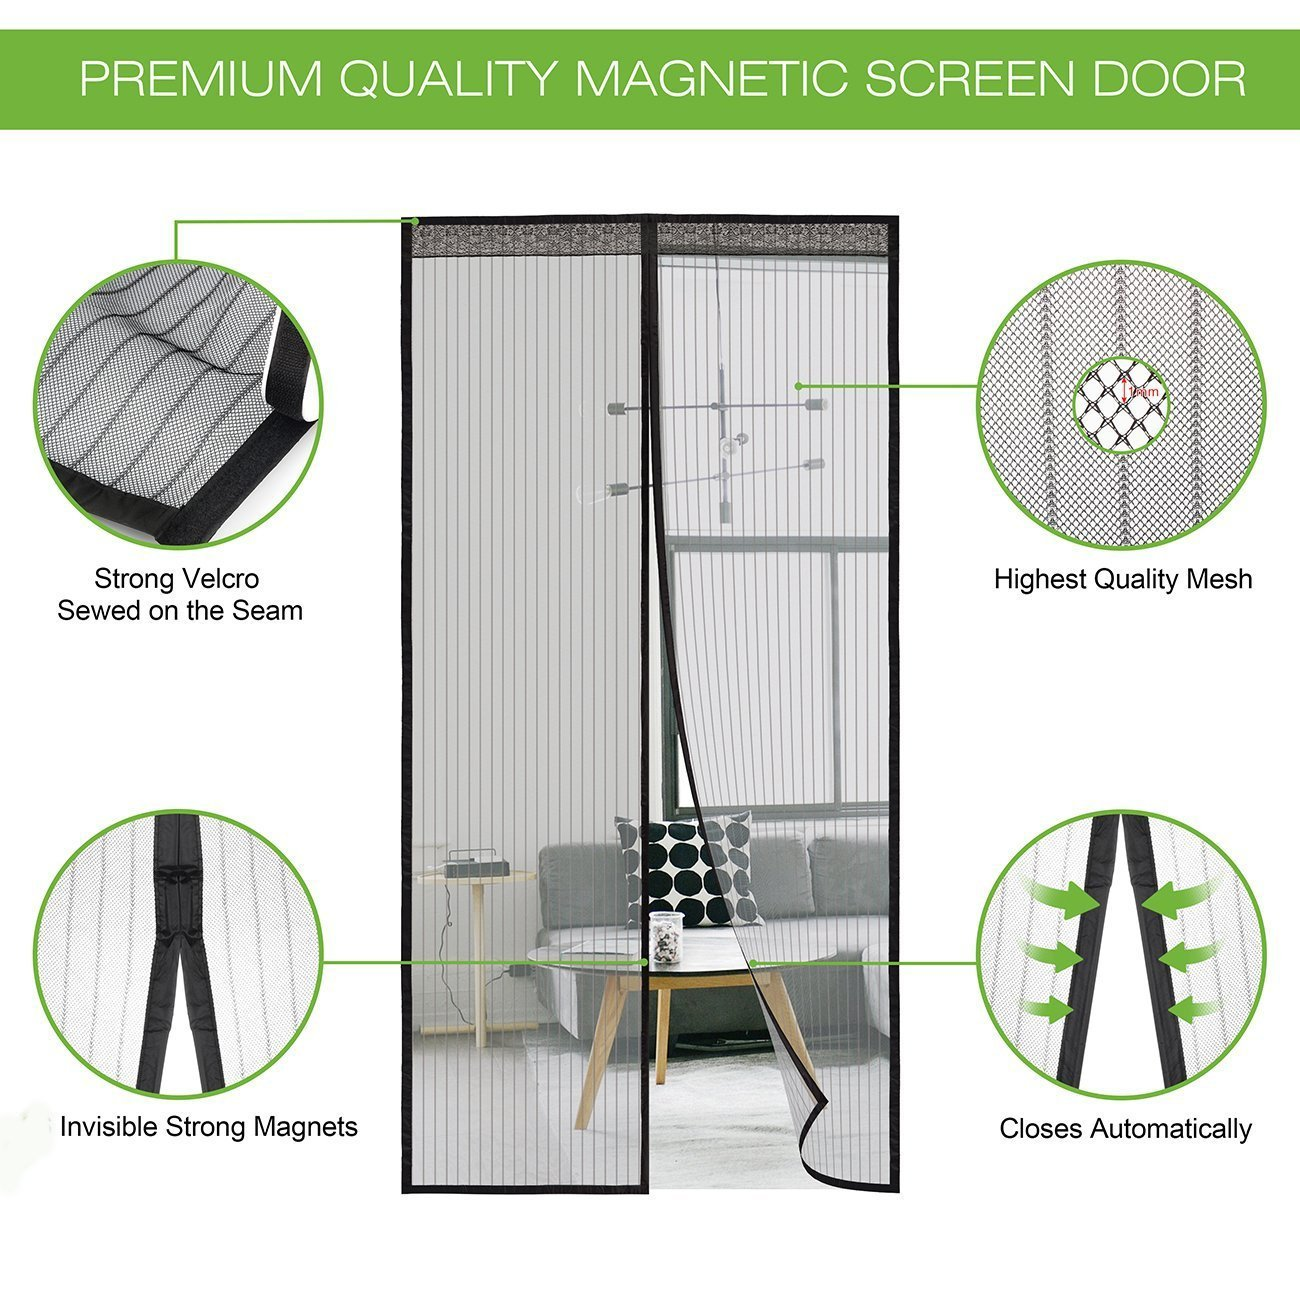 """TiTa-Dong Magnetic Screen Door, Polyester Yarn Mesh Curtain with Full Frame Velcro and Heavy Duty Mesh Curtain for Balcony, Patio Porch Keeps Mosquitoes Insect Bites Out Fits Doors Up to 38""""x 82"""""""